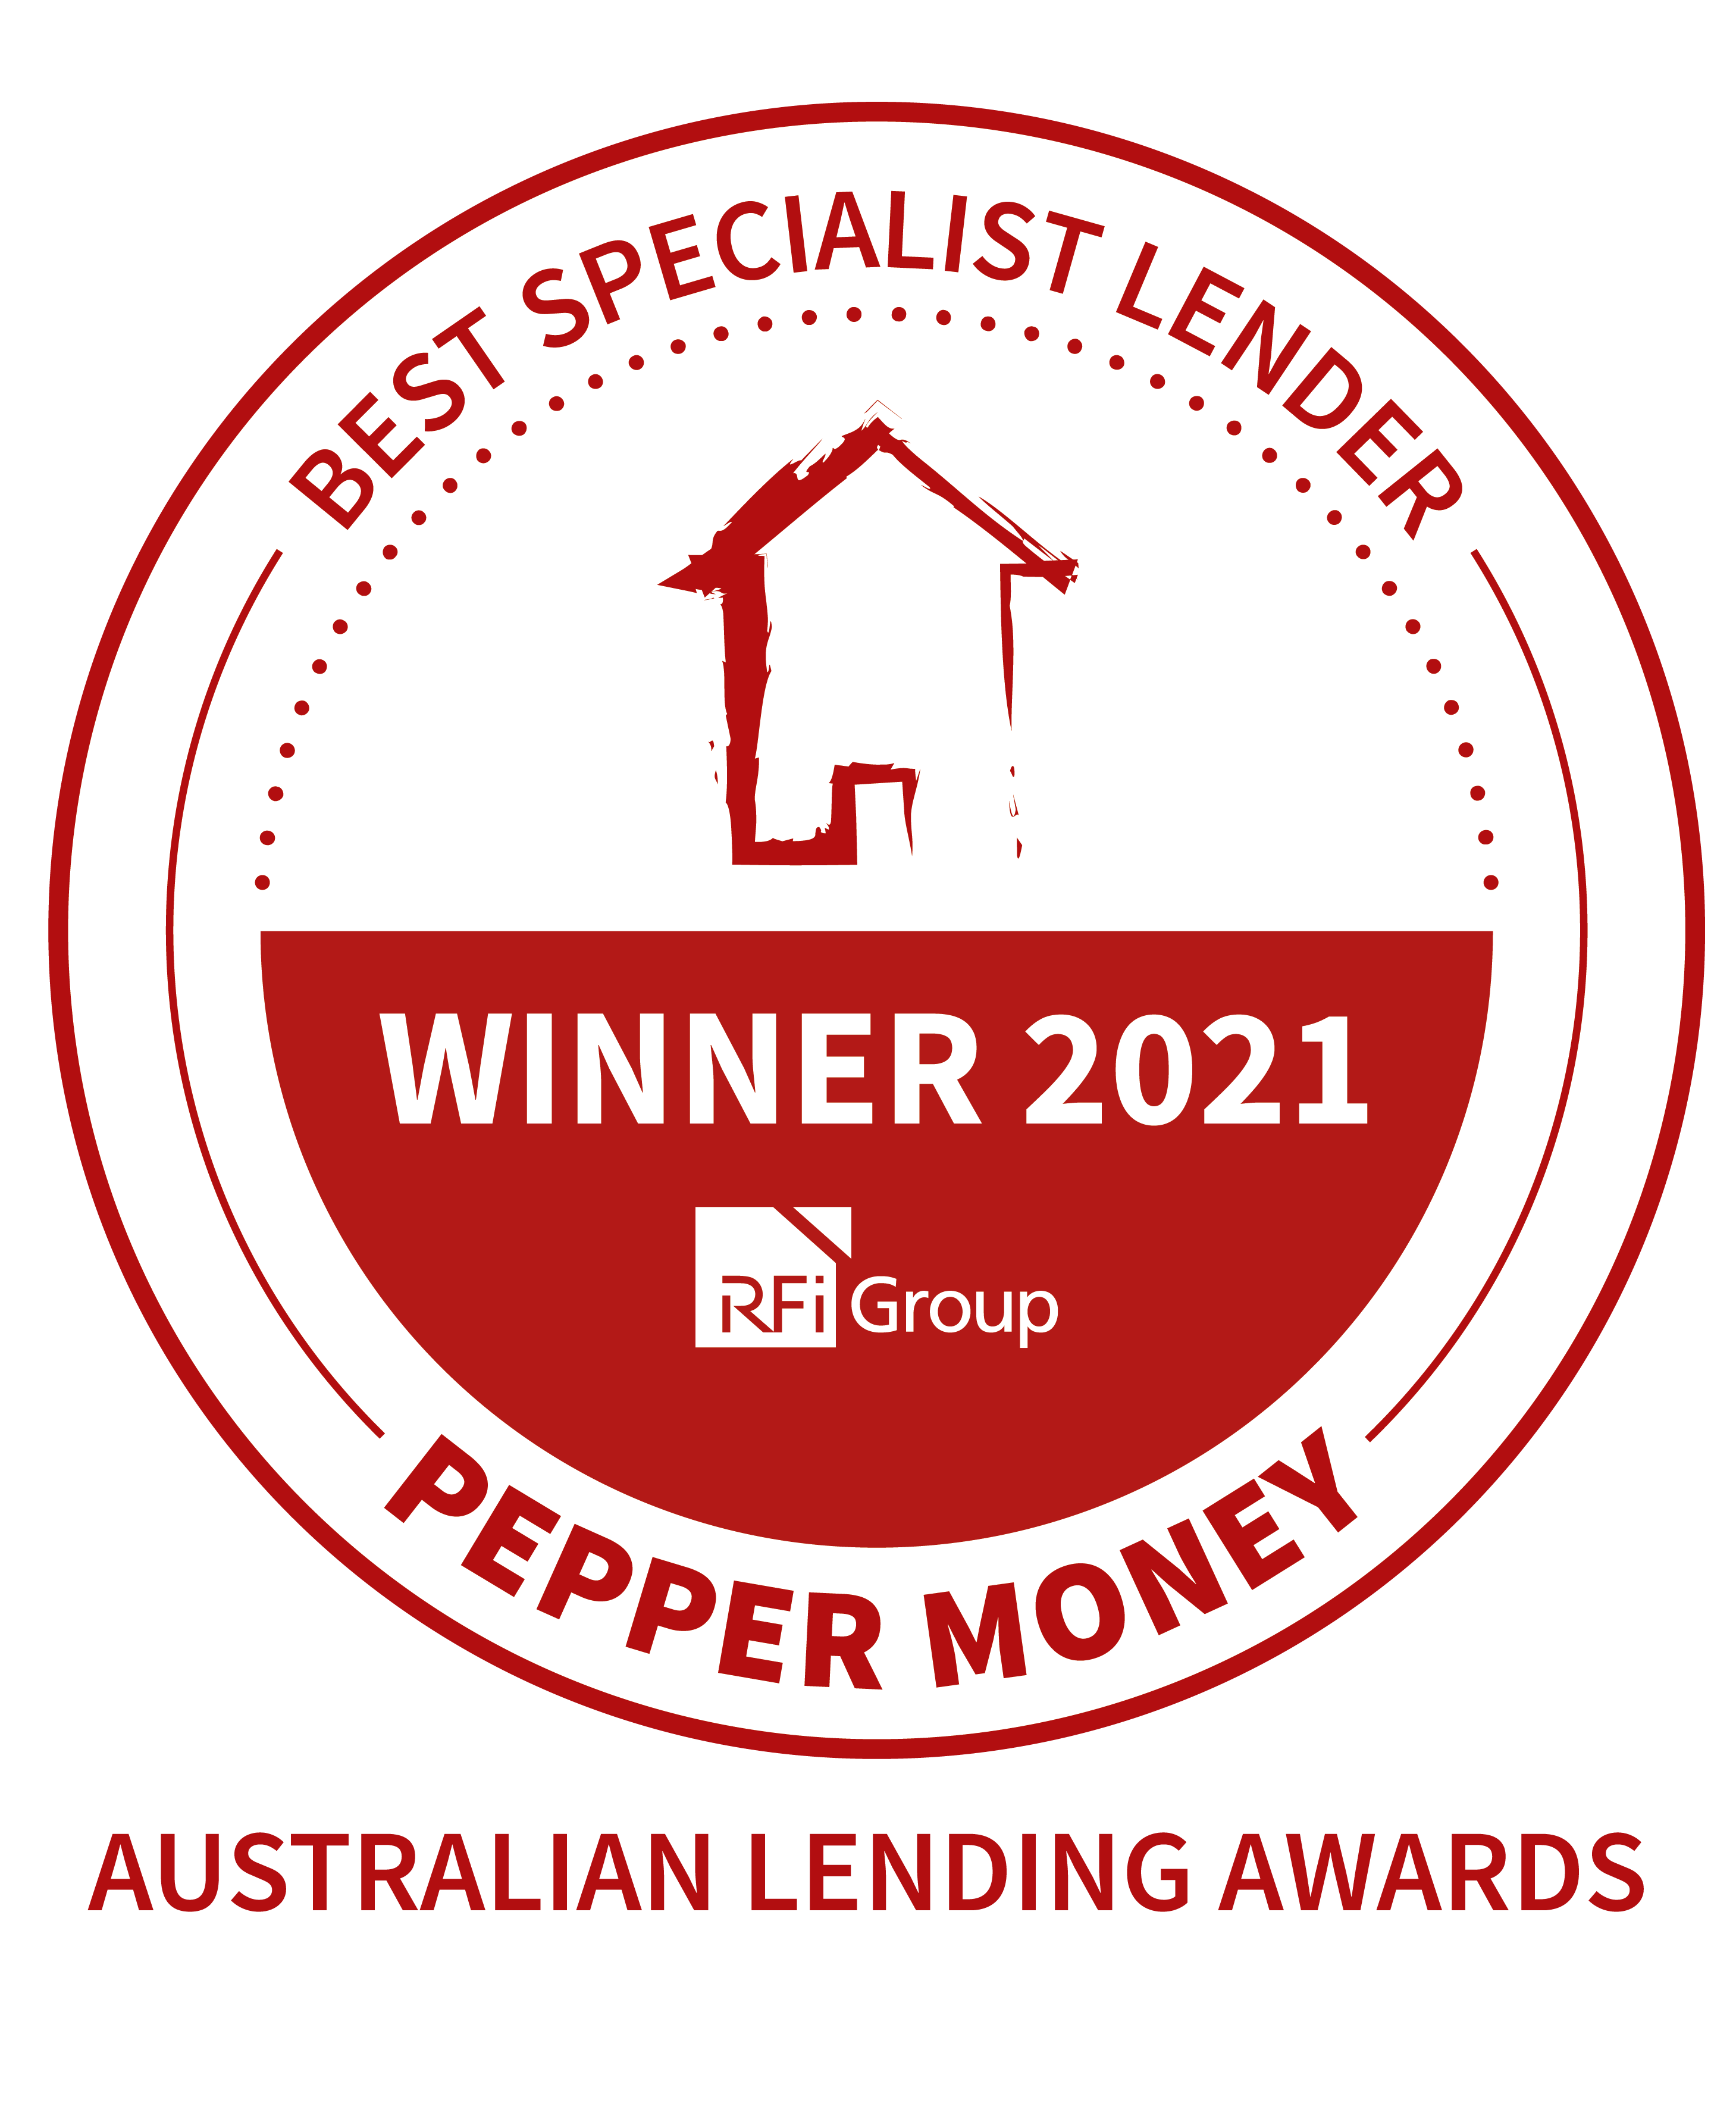 Pepper Money wins Best Specialist Lender at the 2021 Australian Lending Awards